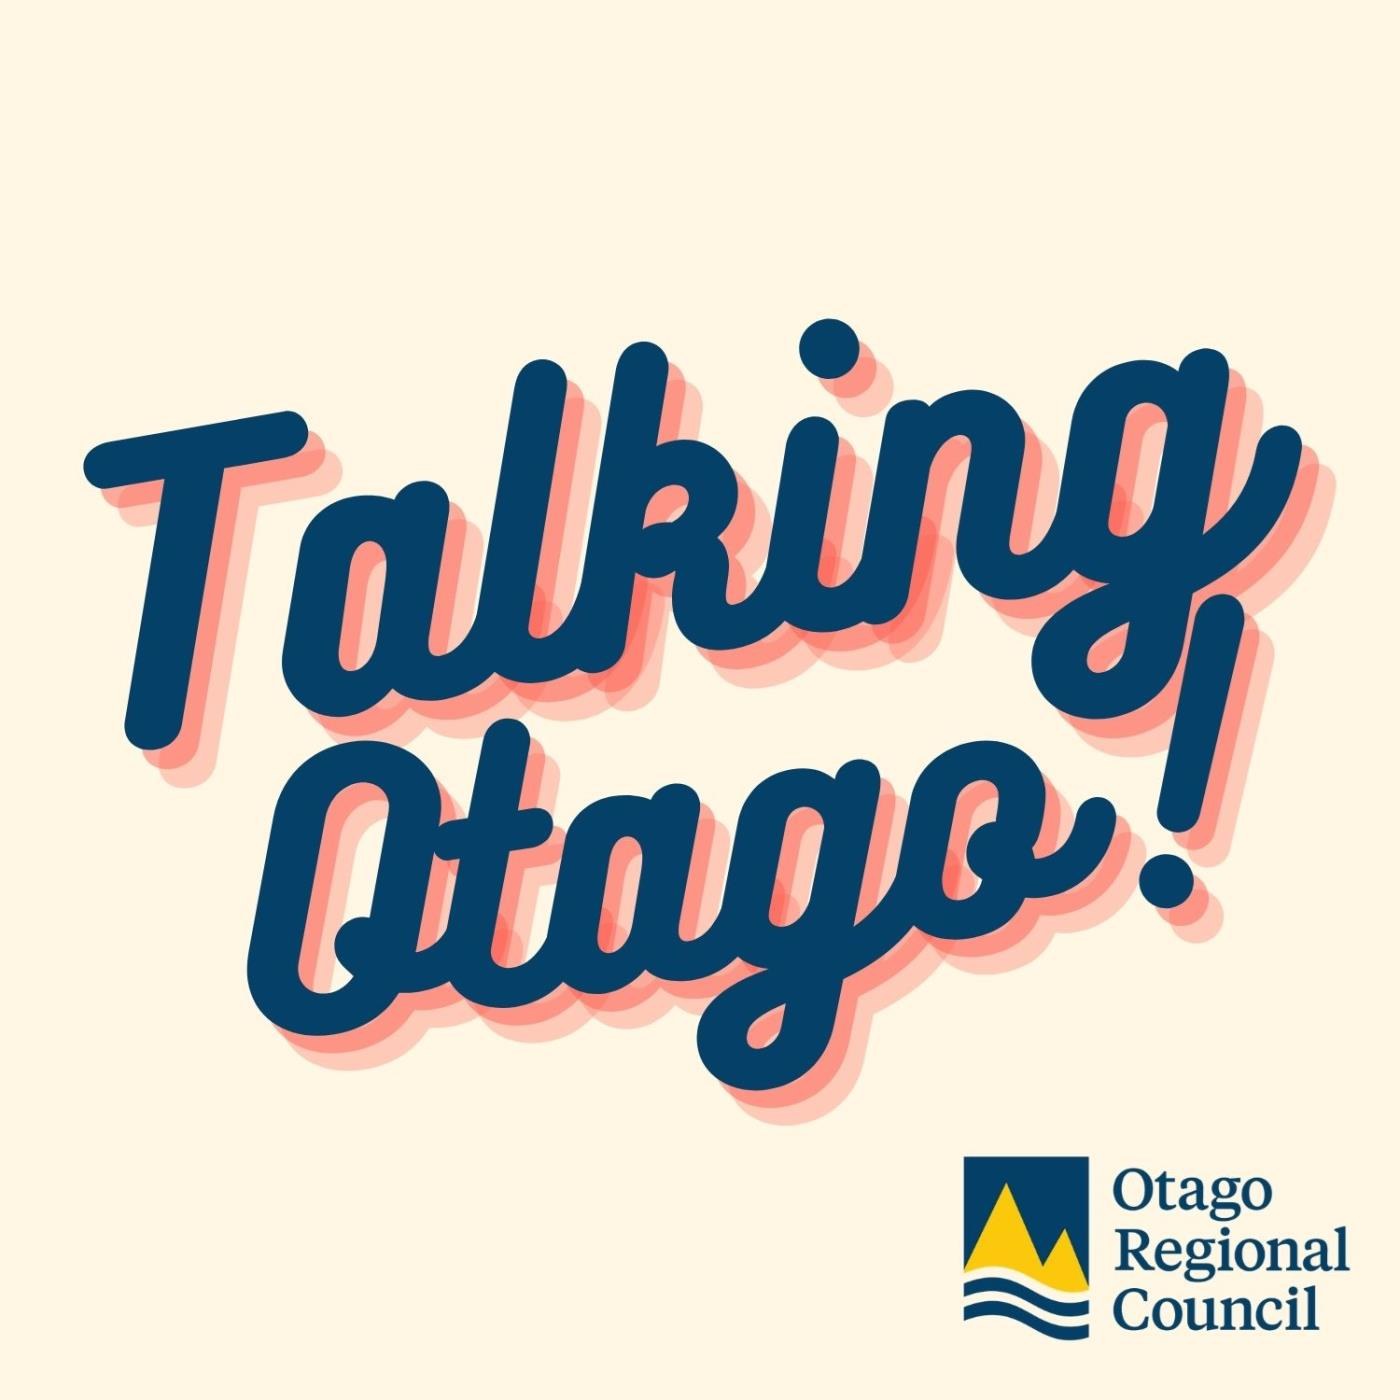 Talking Otago with ORC - 21-01-2021 - The Boating Code - Steve Rushbrook and Bryan Scott